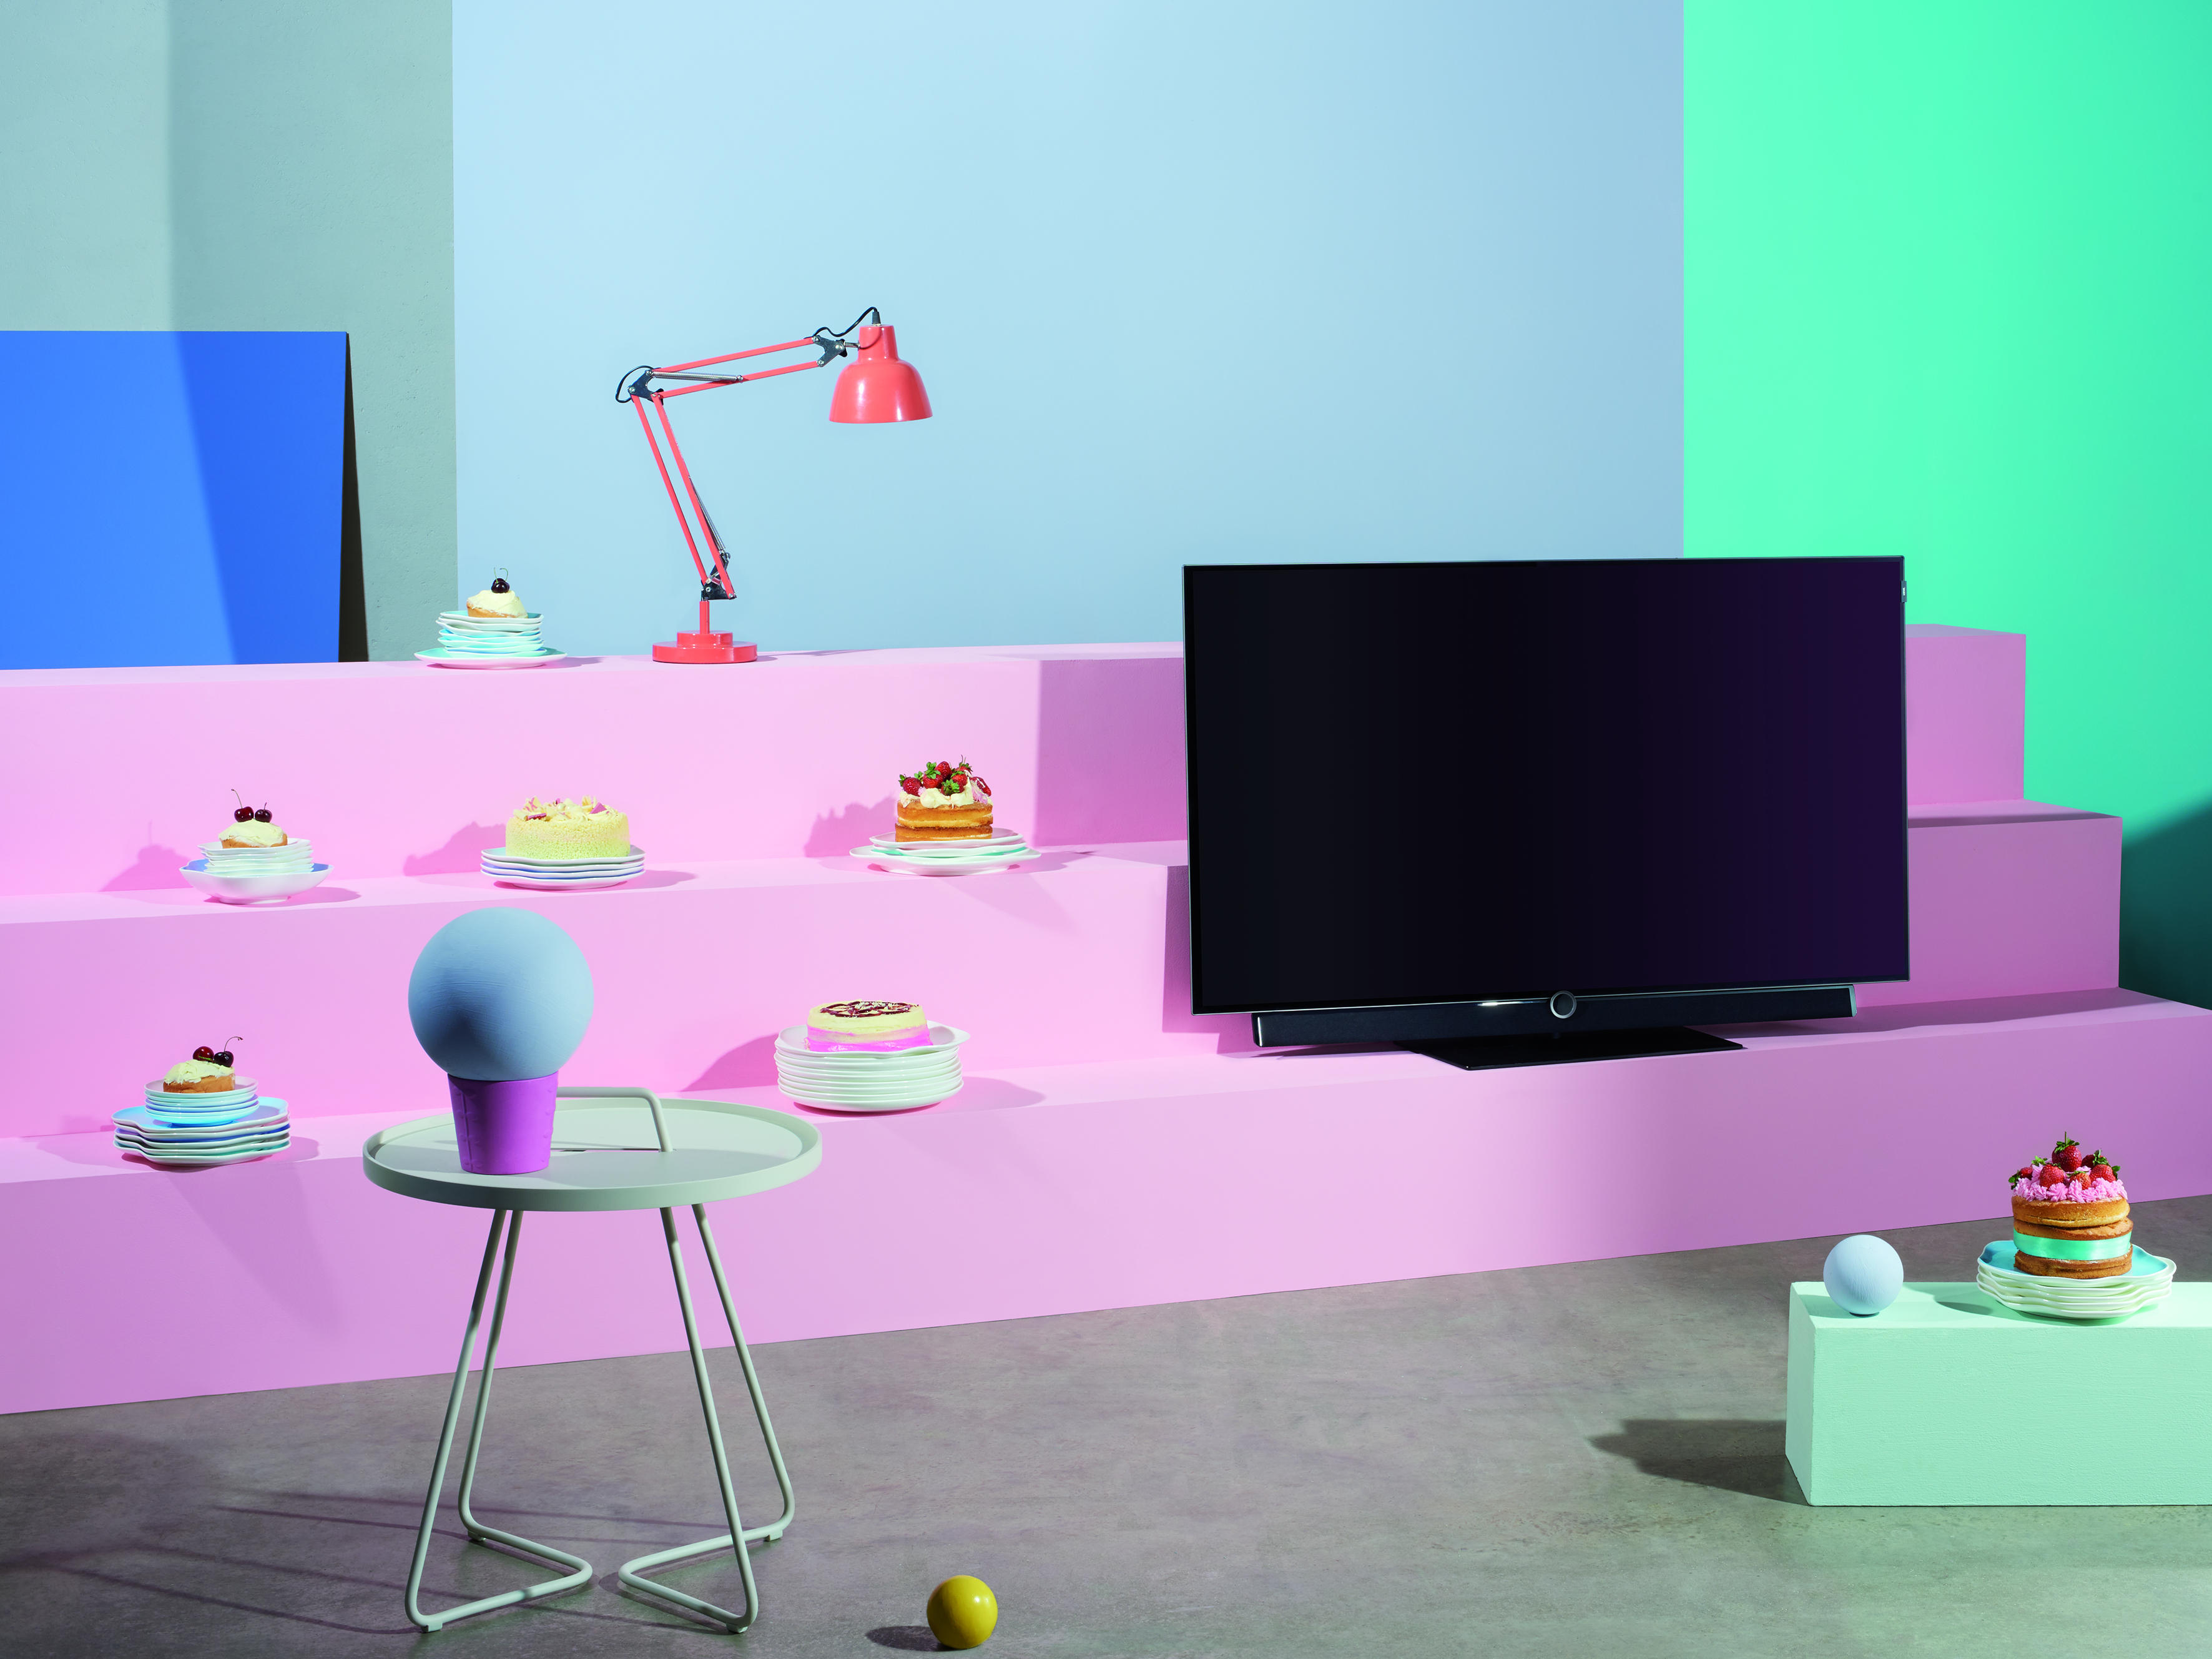 homeviewing made in germany loewe technologies gmbh pressemitteilung. Black Bedroom Furniture Sets. Home Design Ideas